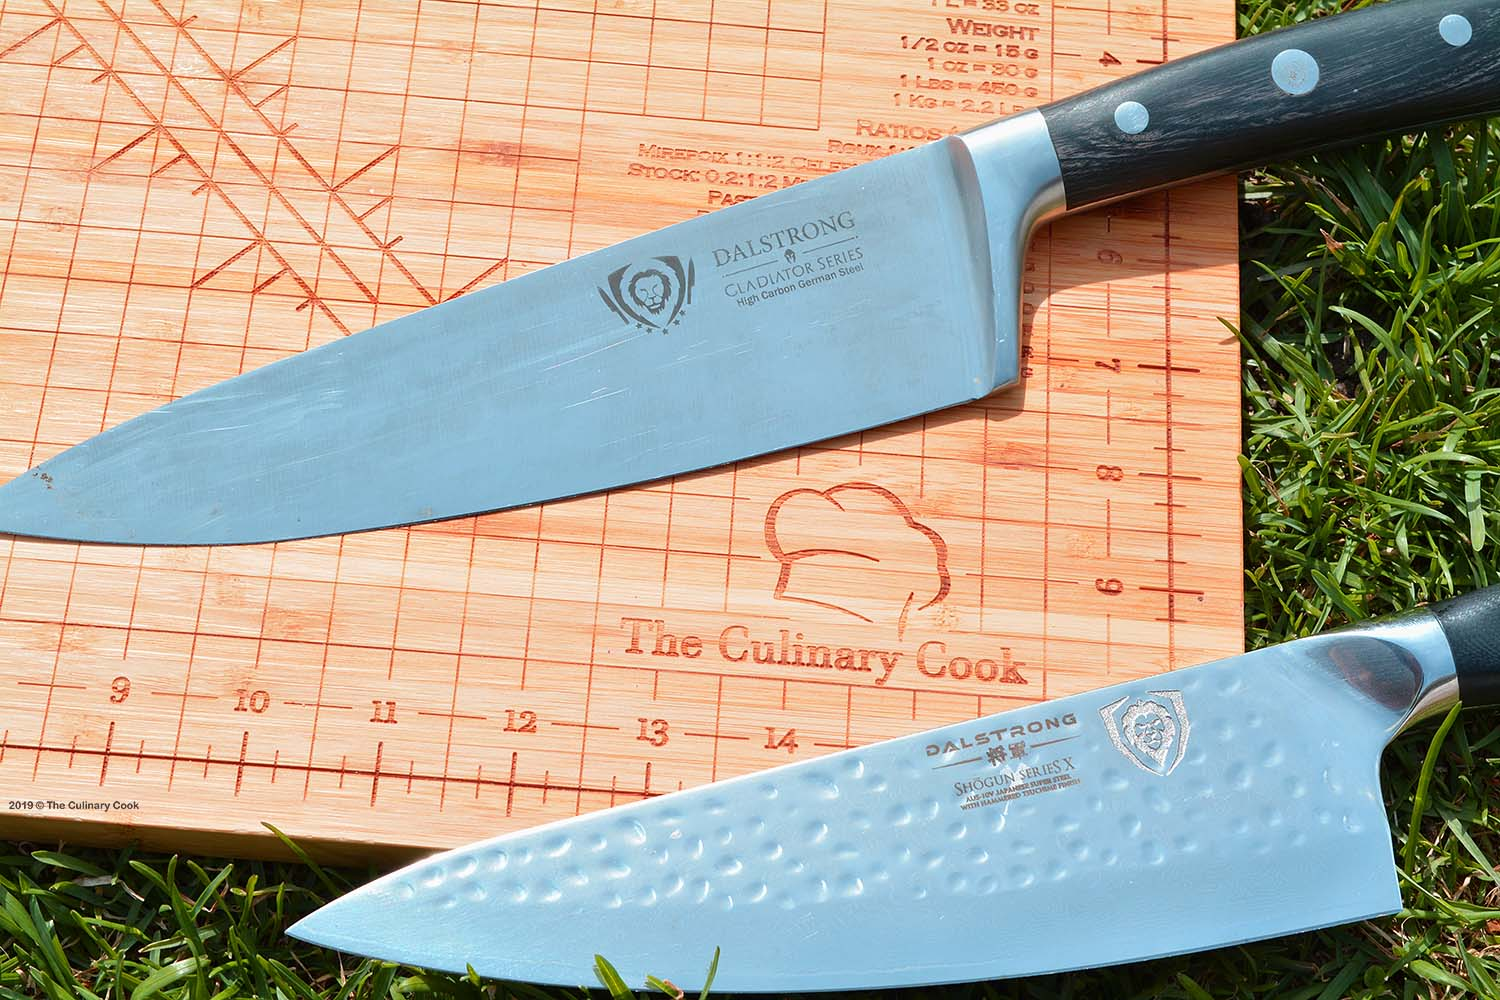 Dalstrong Chef Knives Reviewed After 1 Year The Culinary Cook